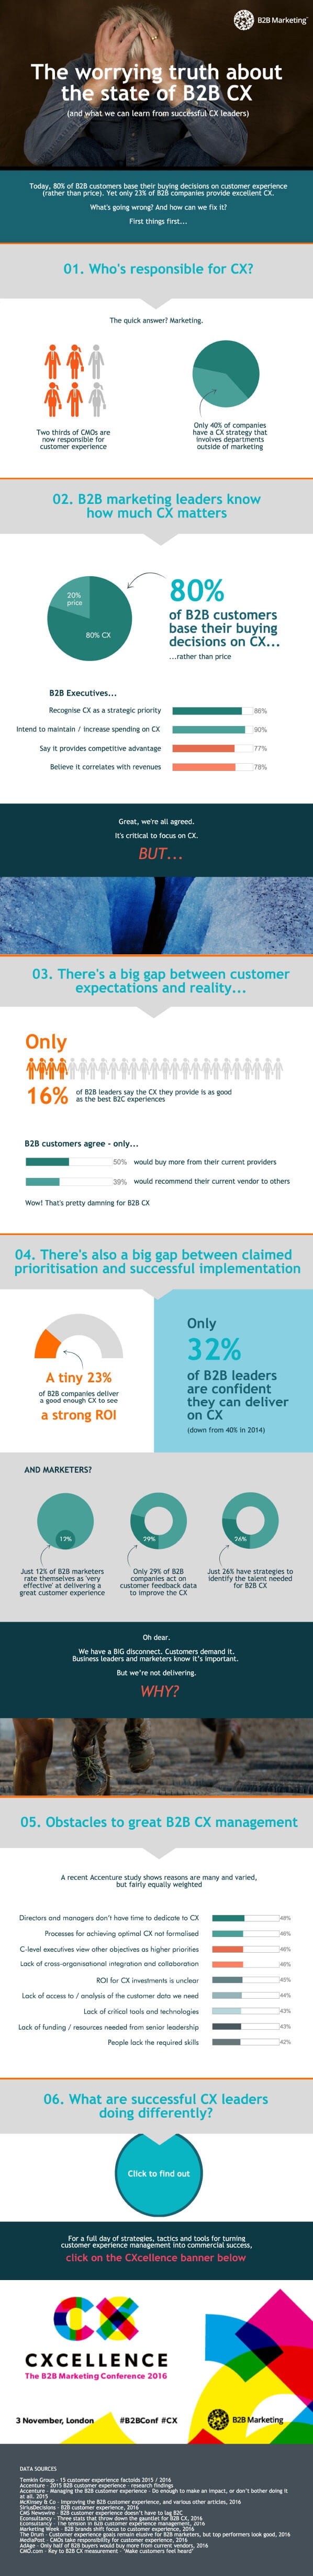 The worrying truth about the state of B2B customer experience (Infographic)